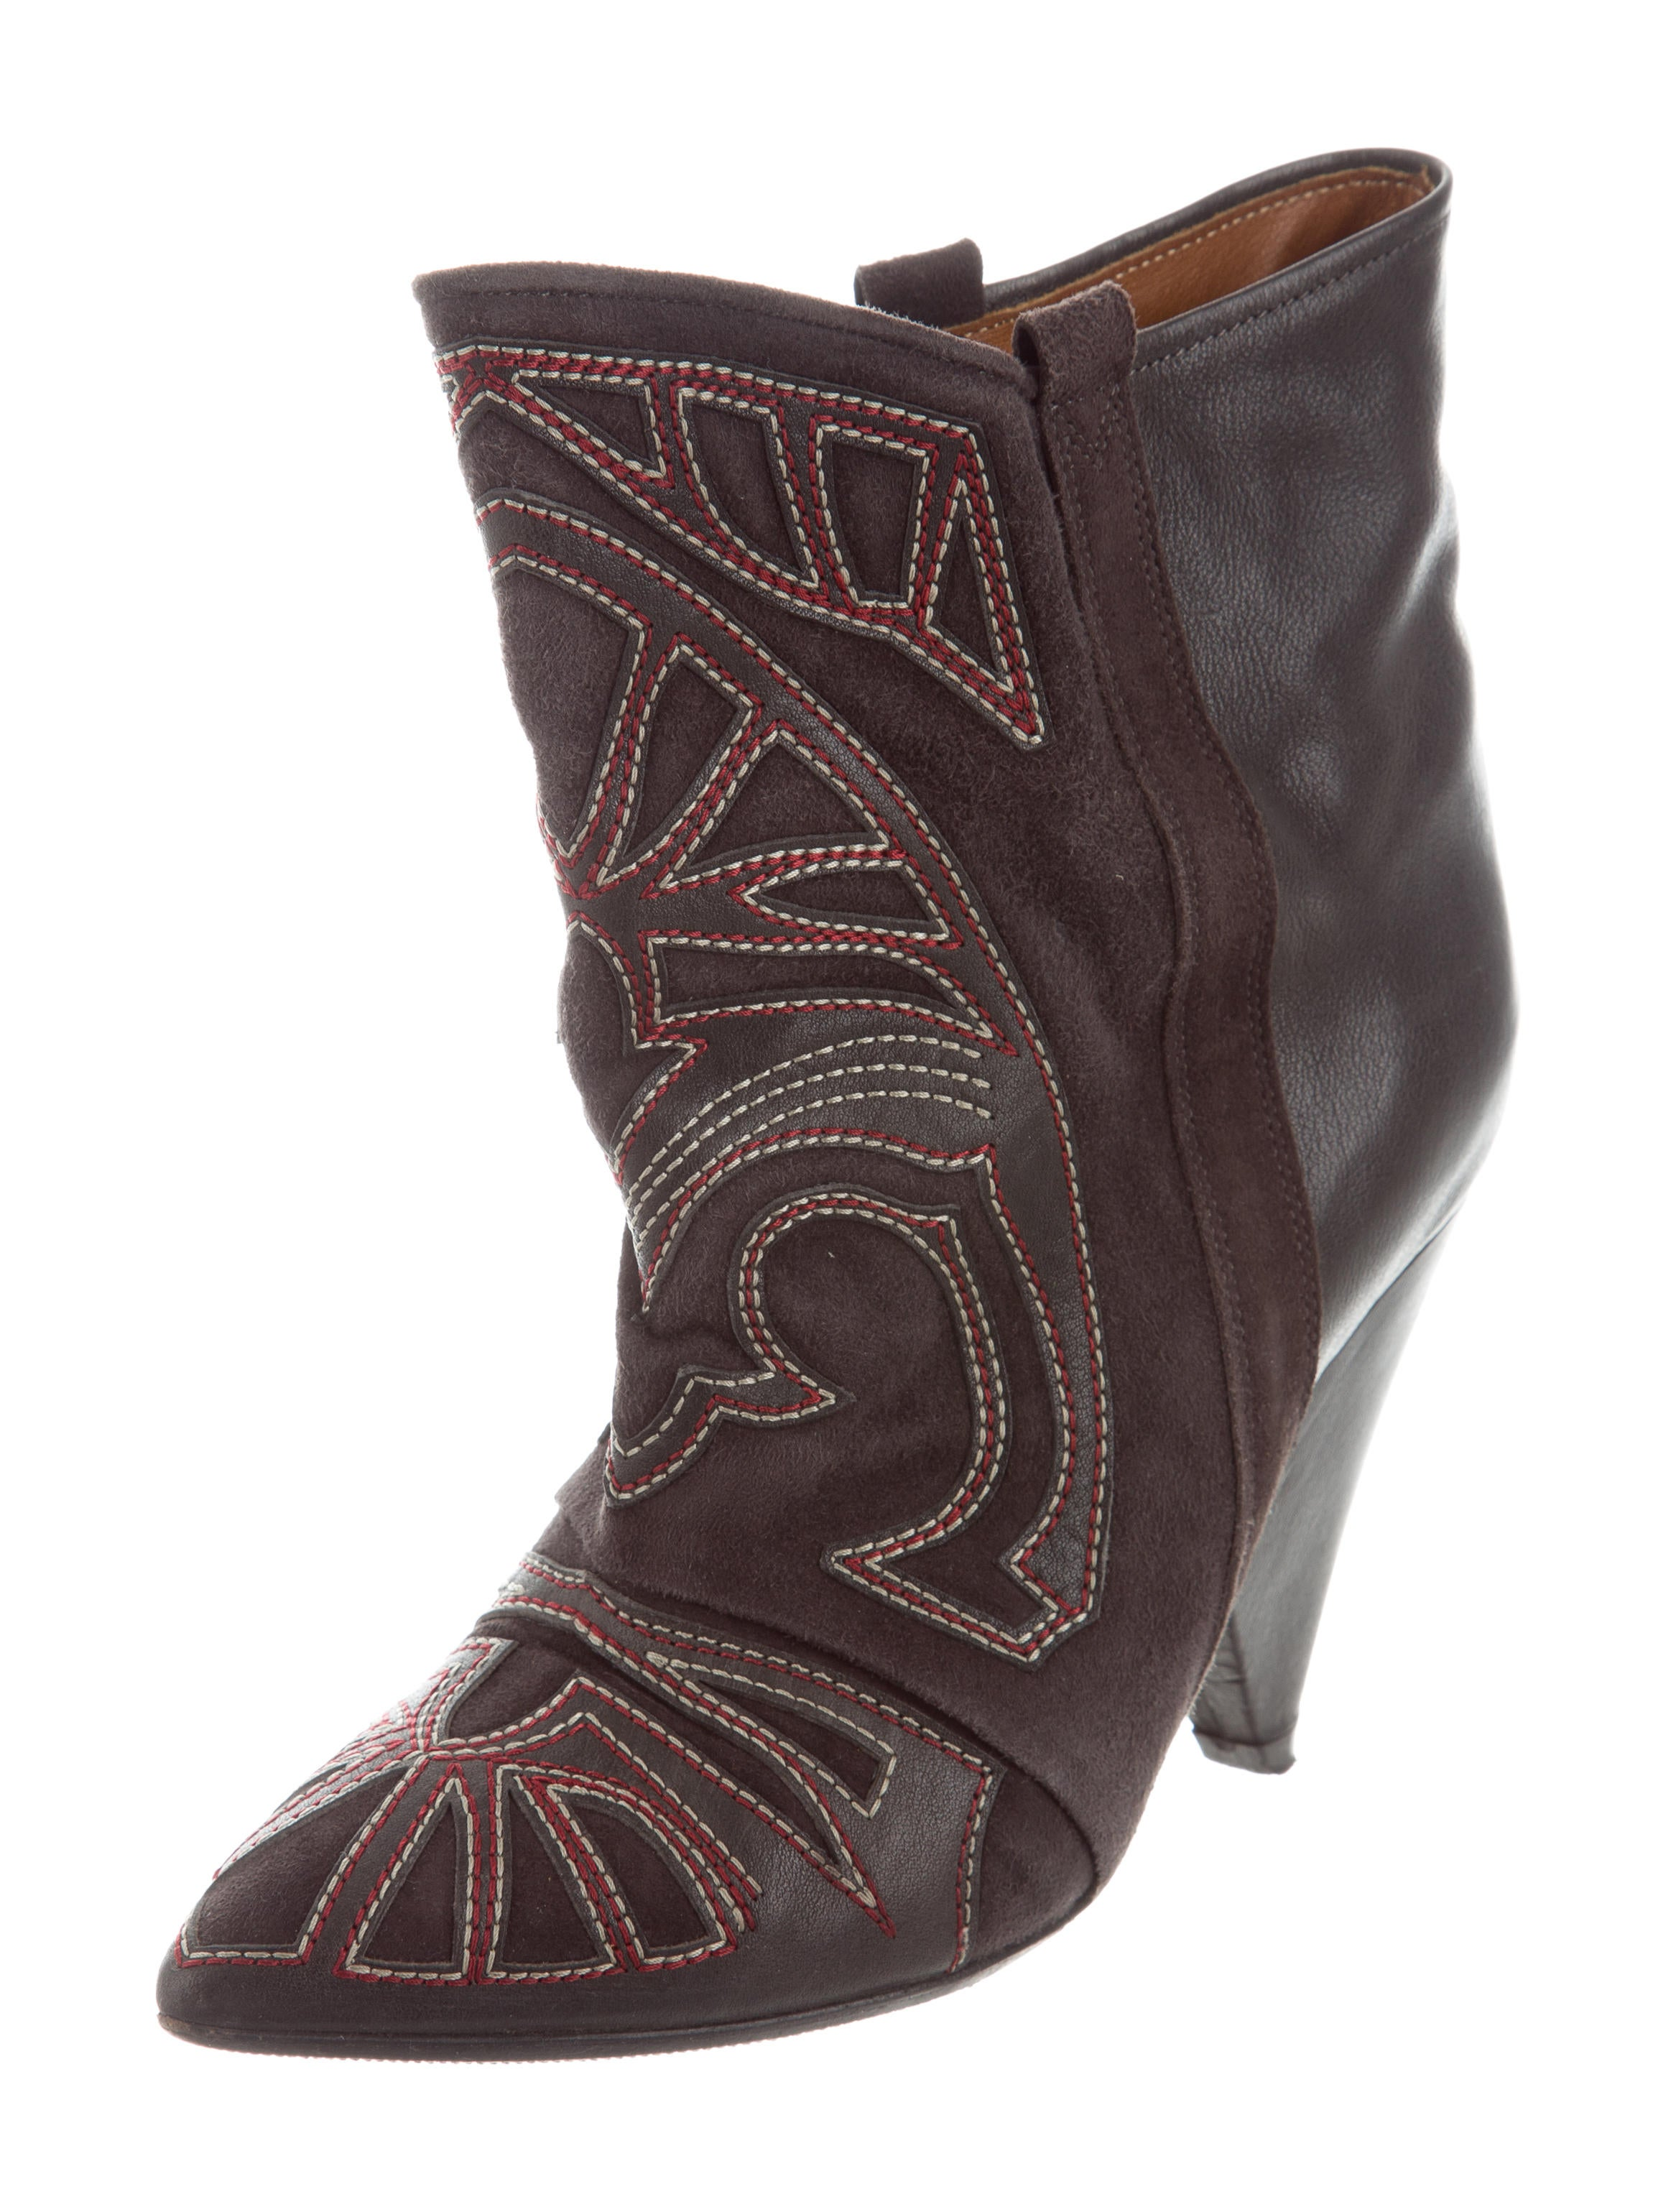 clearance cheap Isabel Marant Berry Pointed-Toe Ankle Boots discount fake shopping online clearance oLYly4I